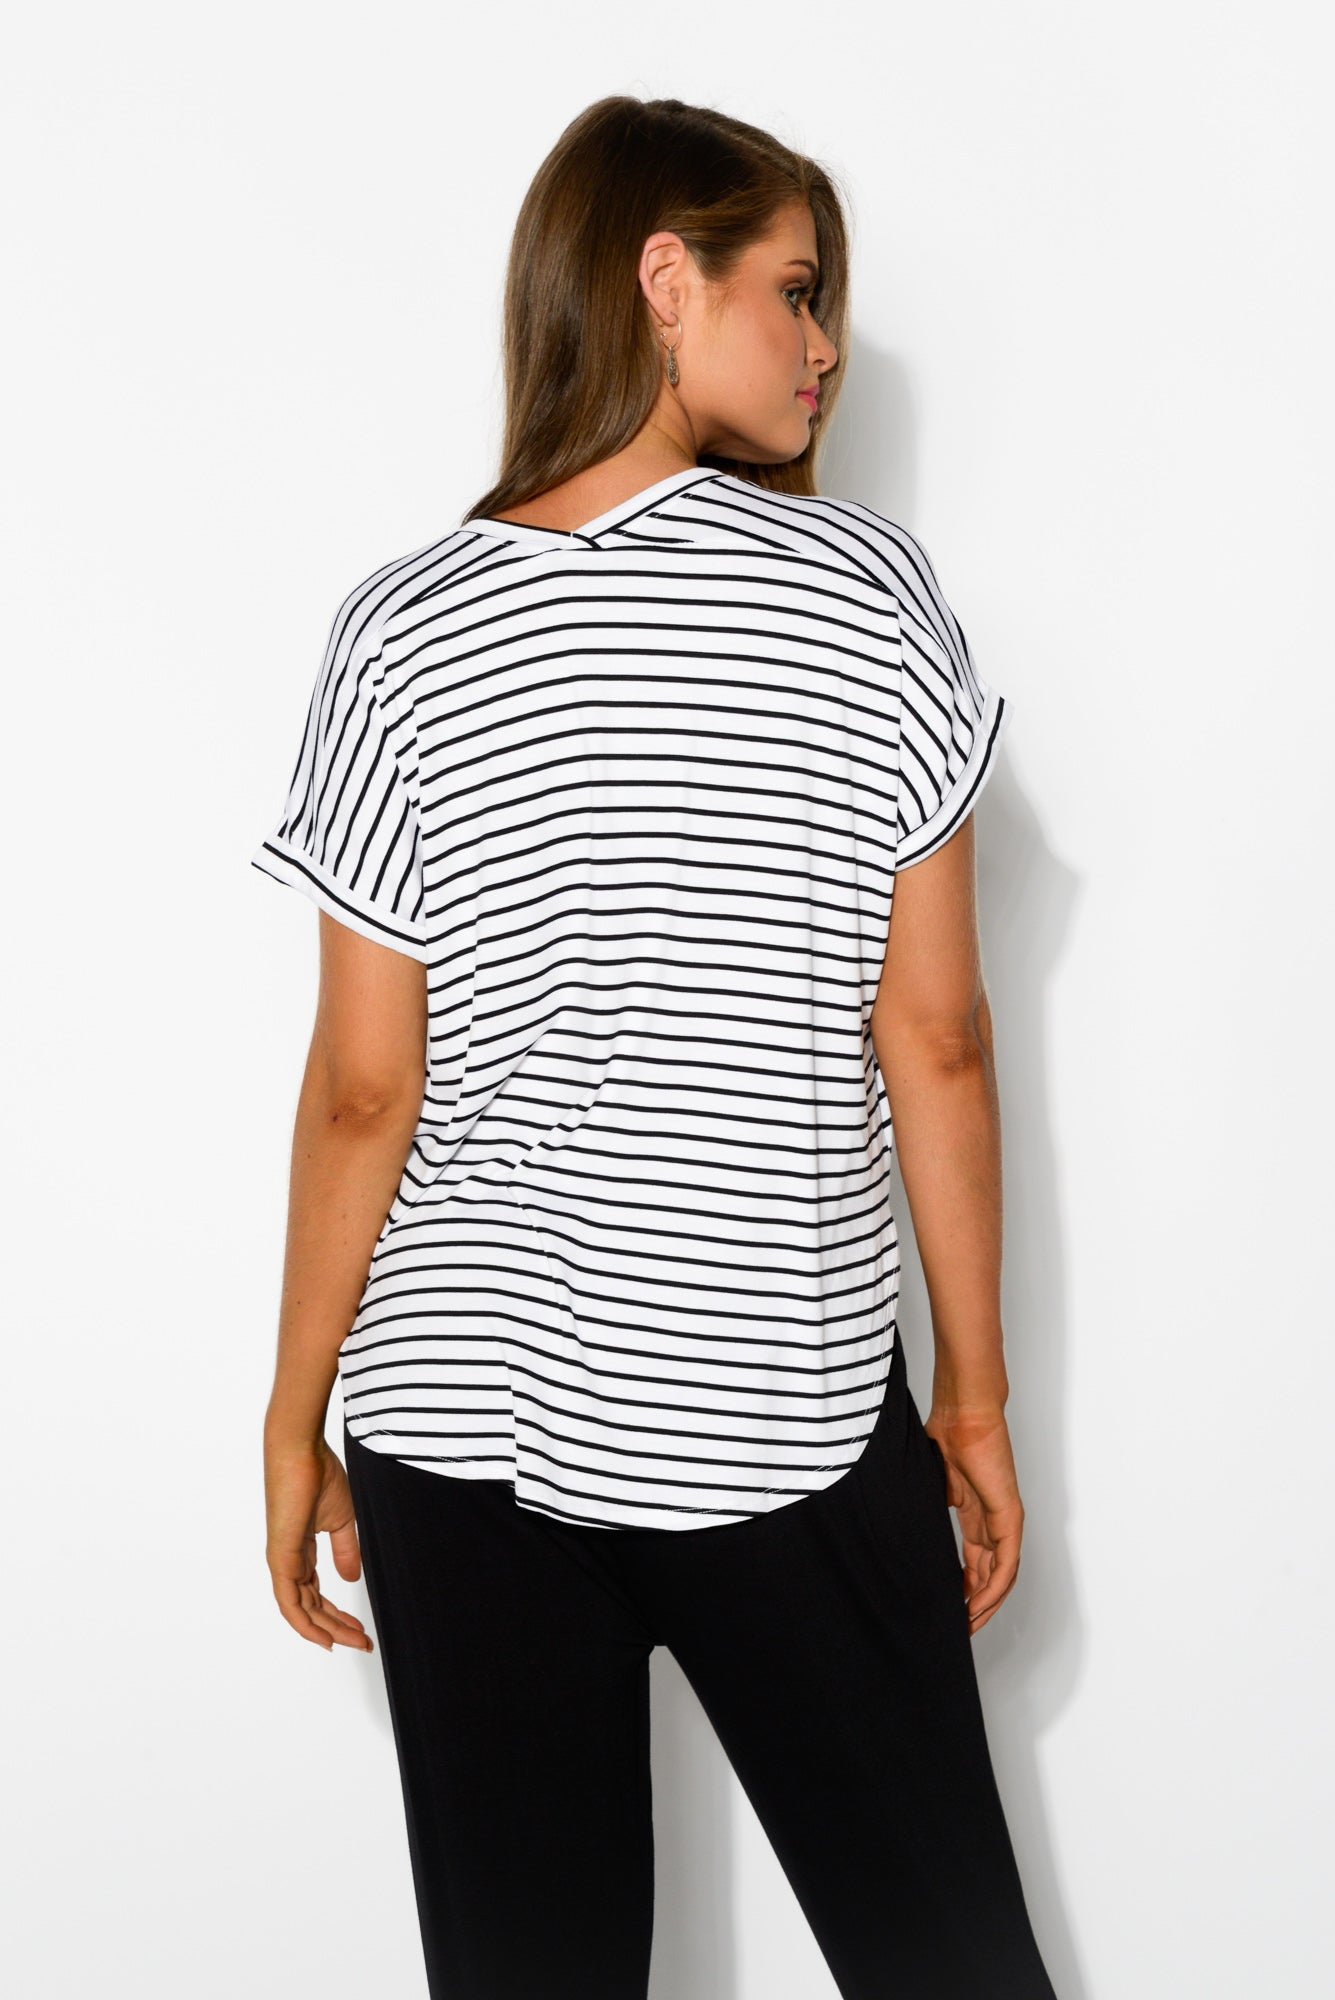 Black Stripe Adelaide Tee - Blue Bungalow